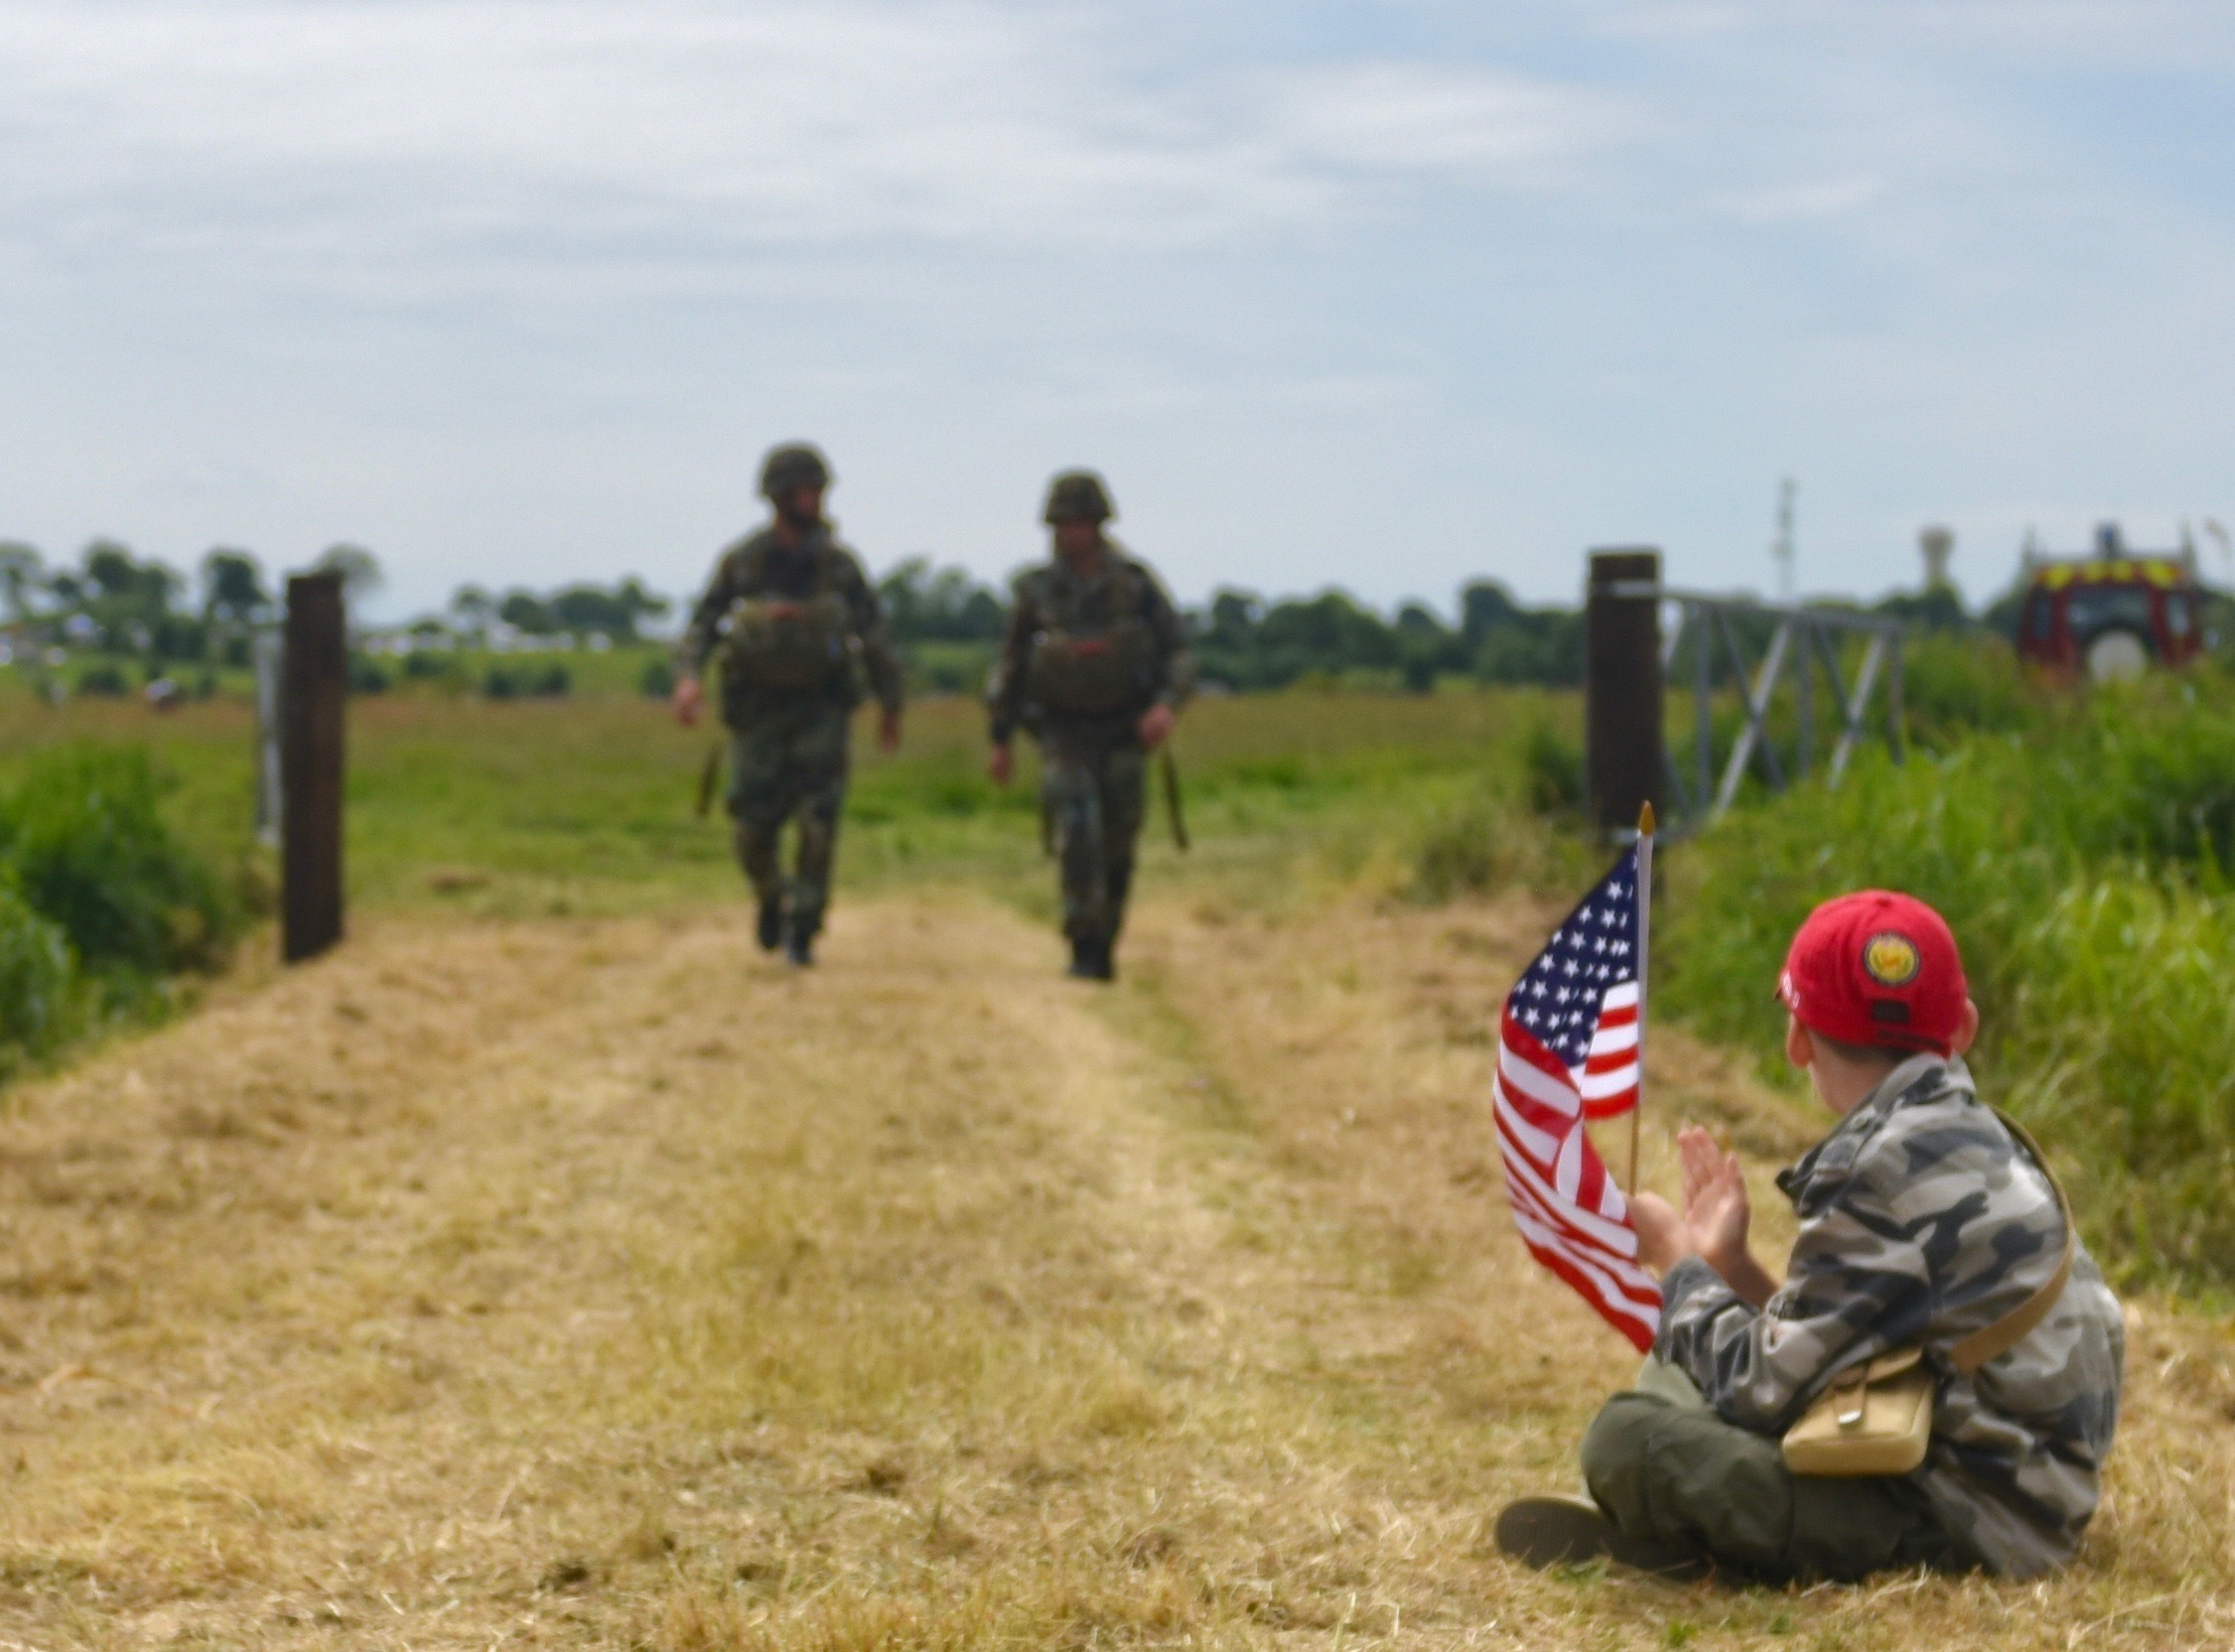 A young French spectators eagerly claps and awaits for two Paratroopers as they come off the drop zone following the commemorative jump by airborne forces into Normandy France for D-Day 73. 